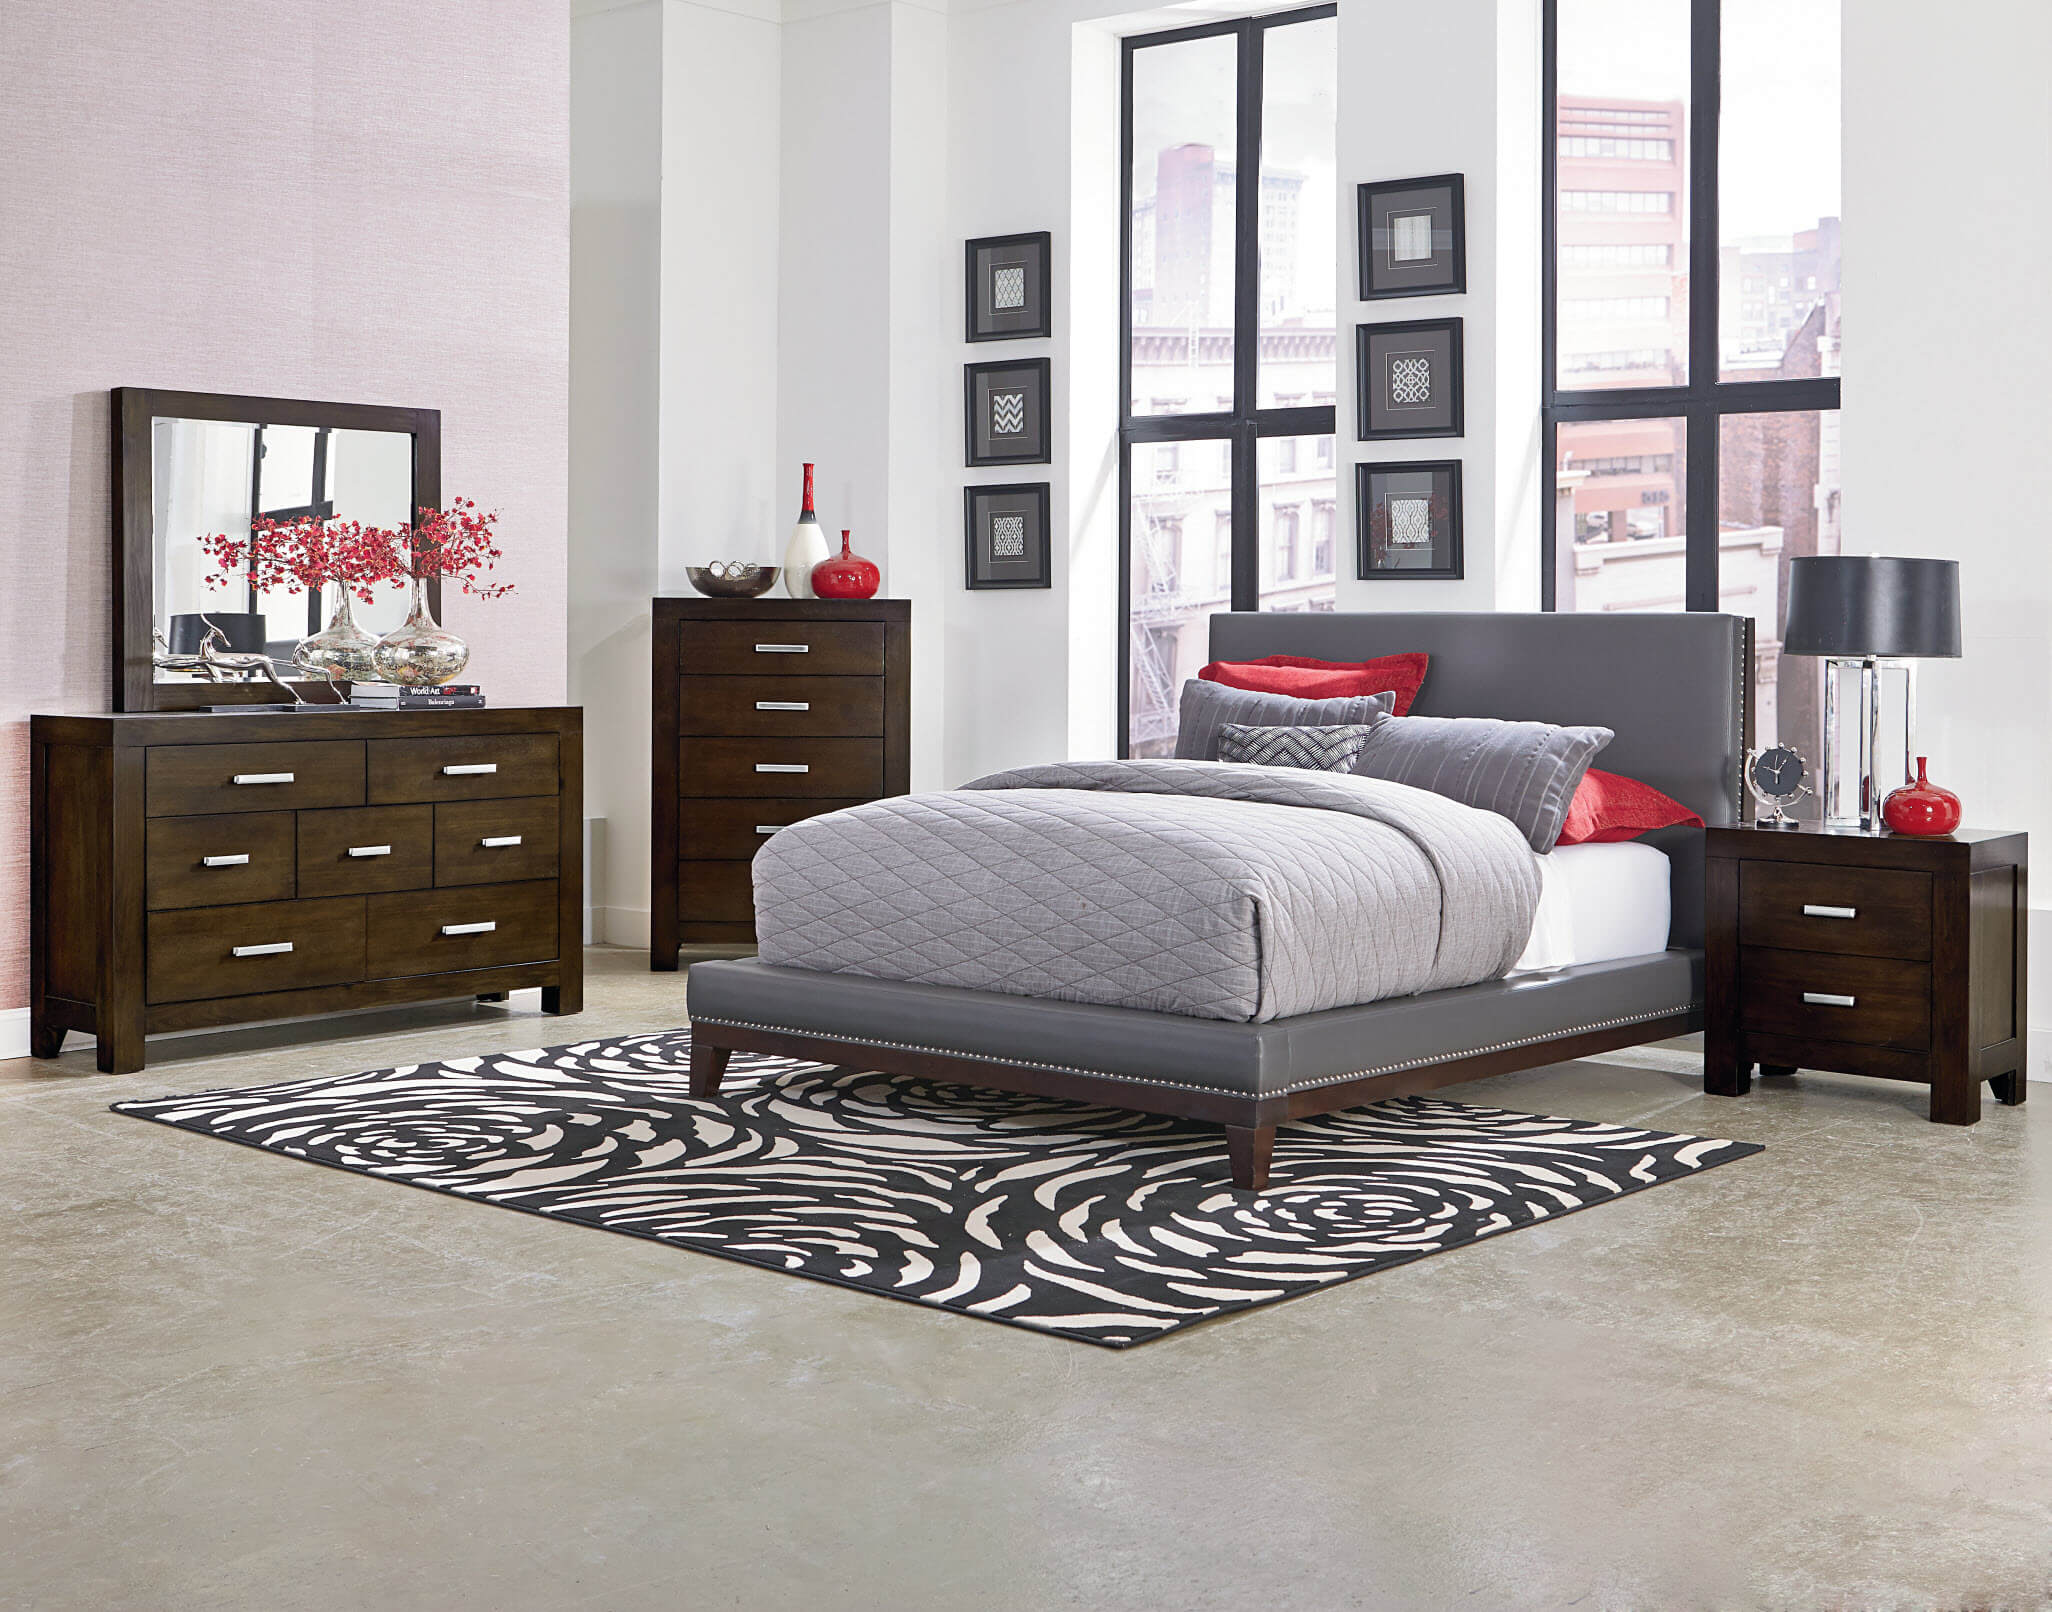 couture platform bedroom set  bedroom furniture sets - bedroom furniture sets